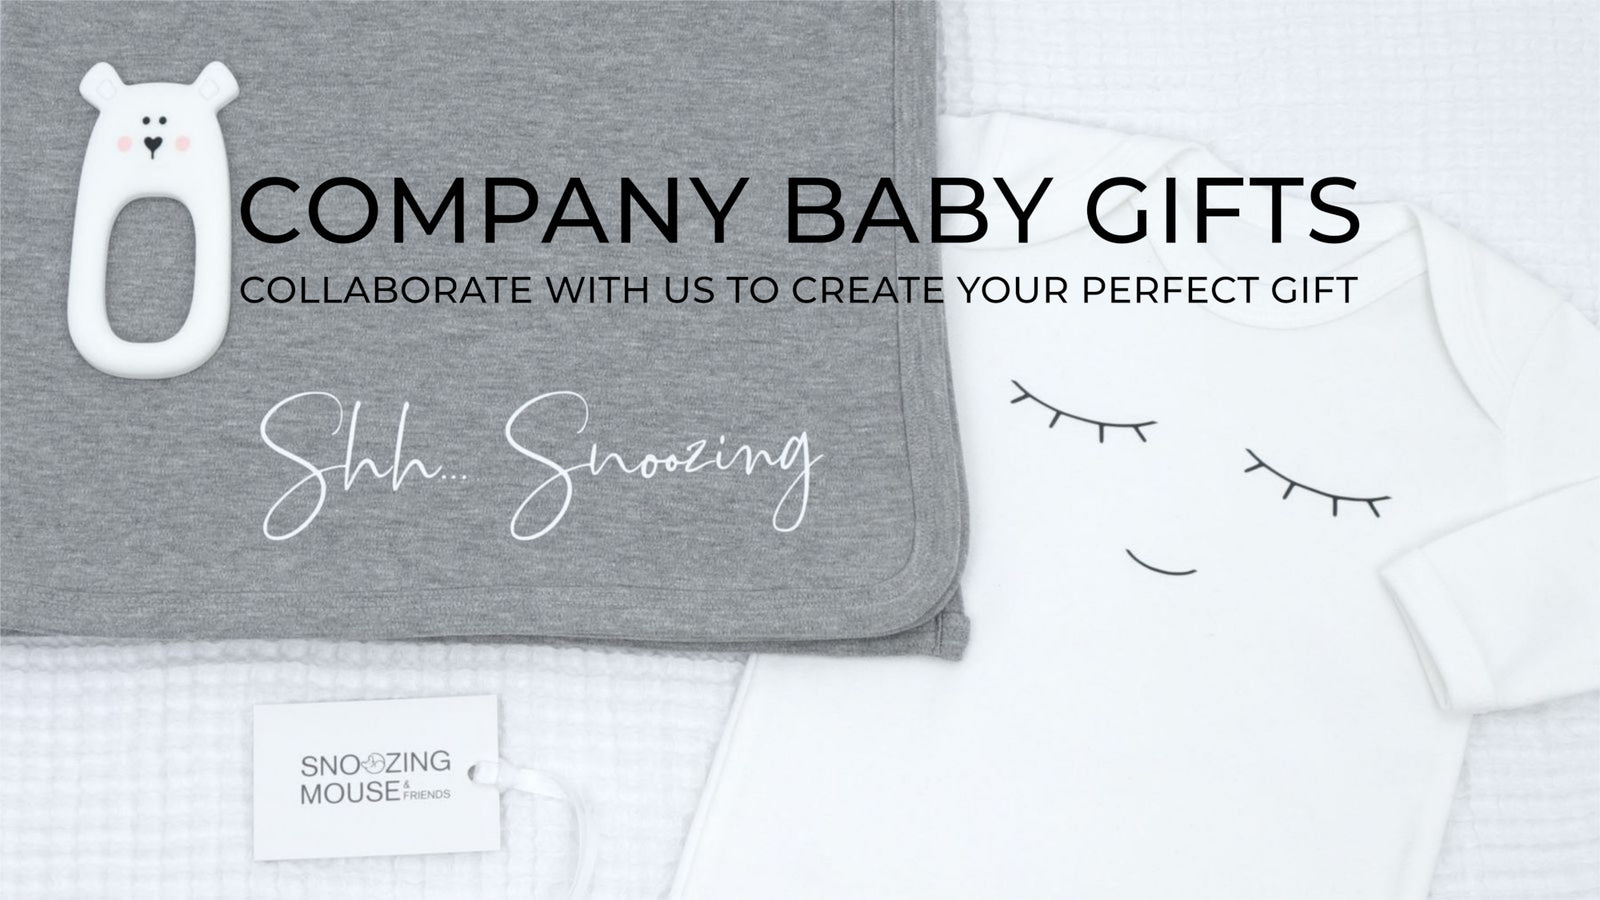 Company Baby Gifts